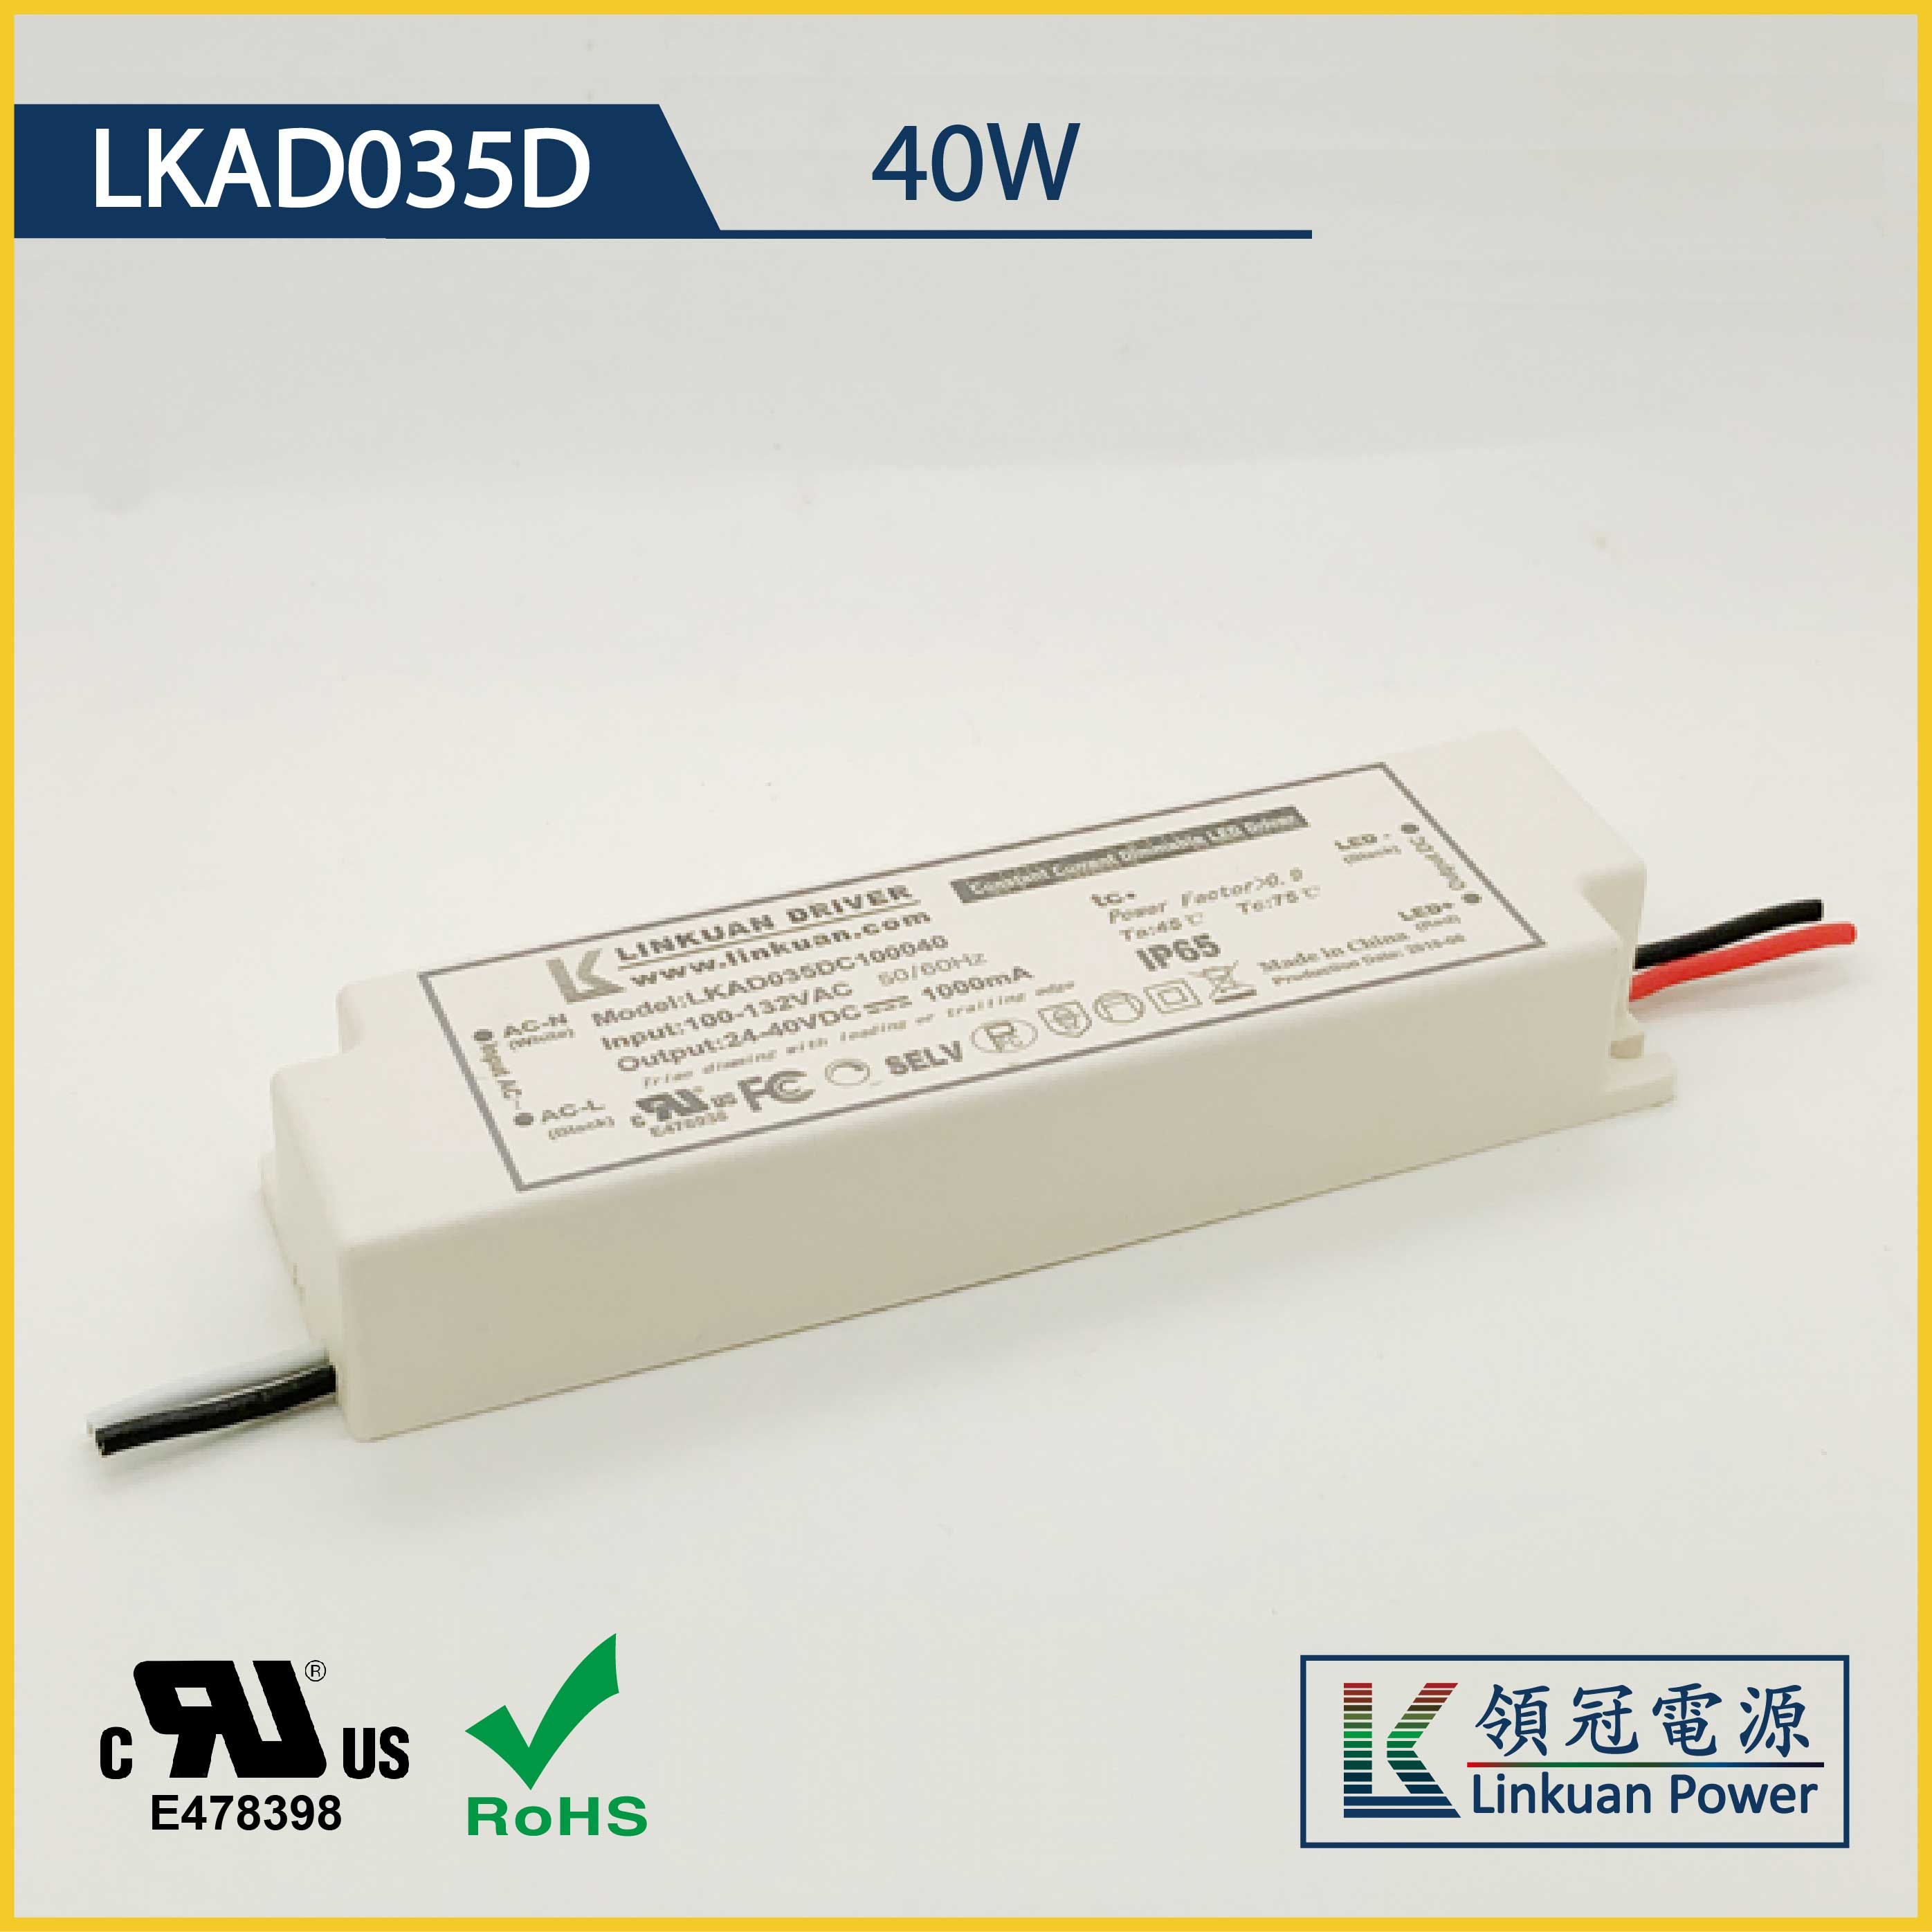 LKAD035D 40W 24-40V 1000 Dimmable LED drivers